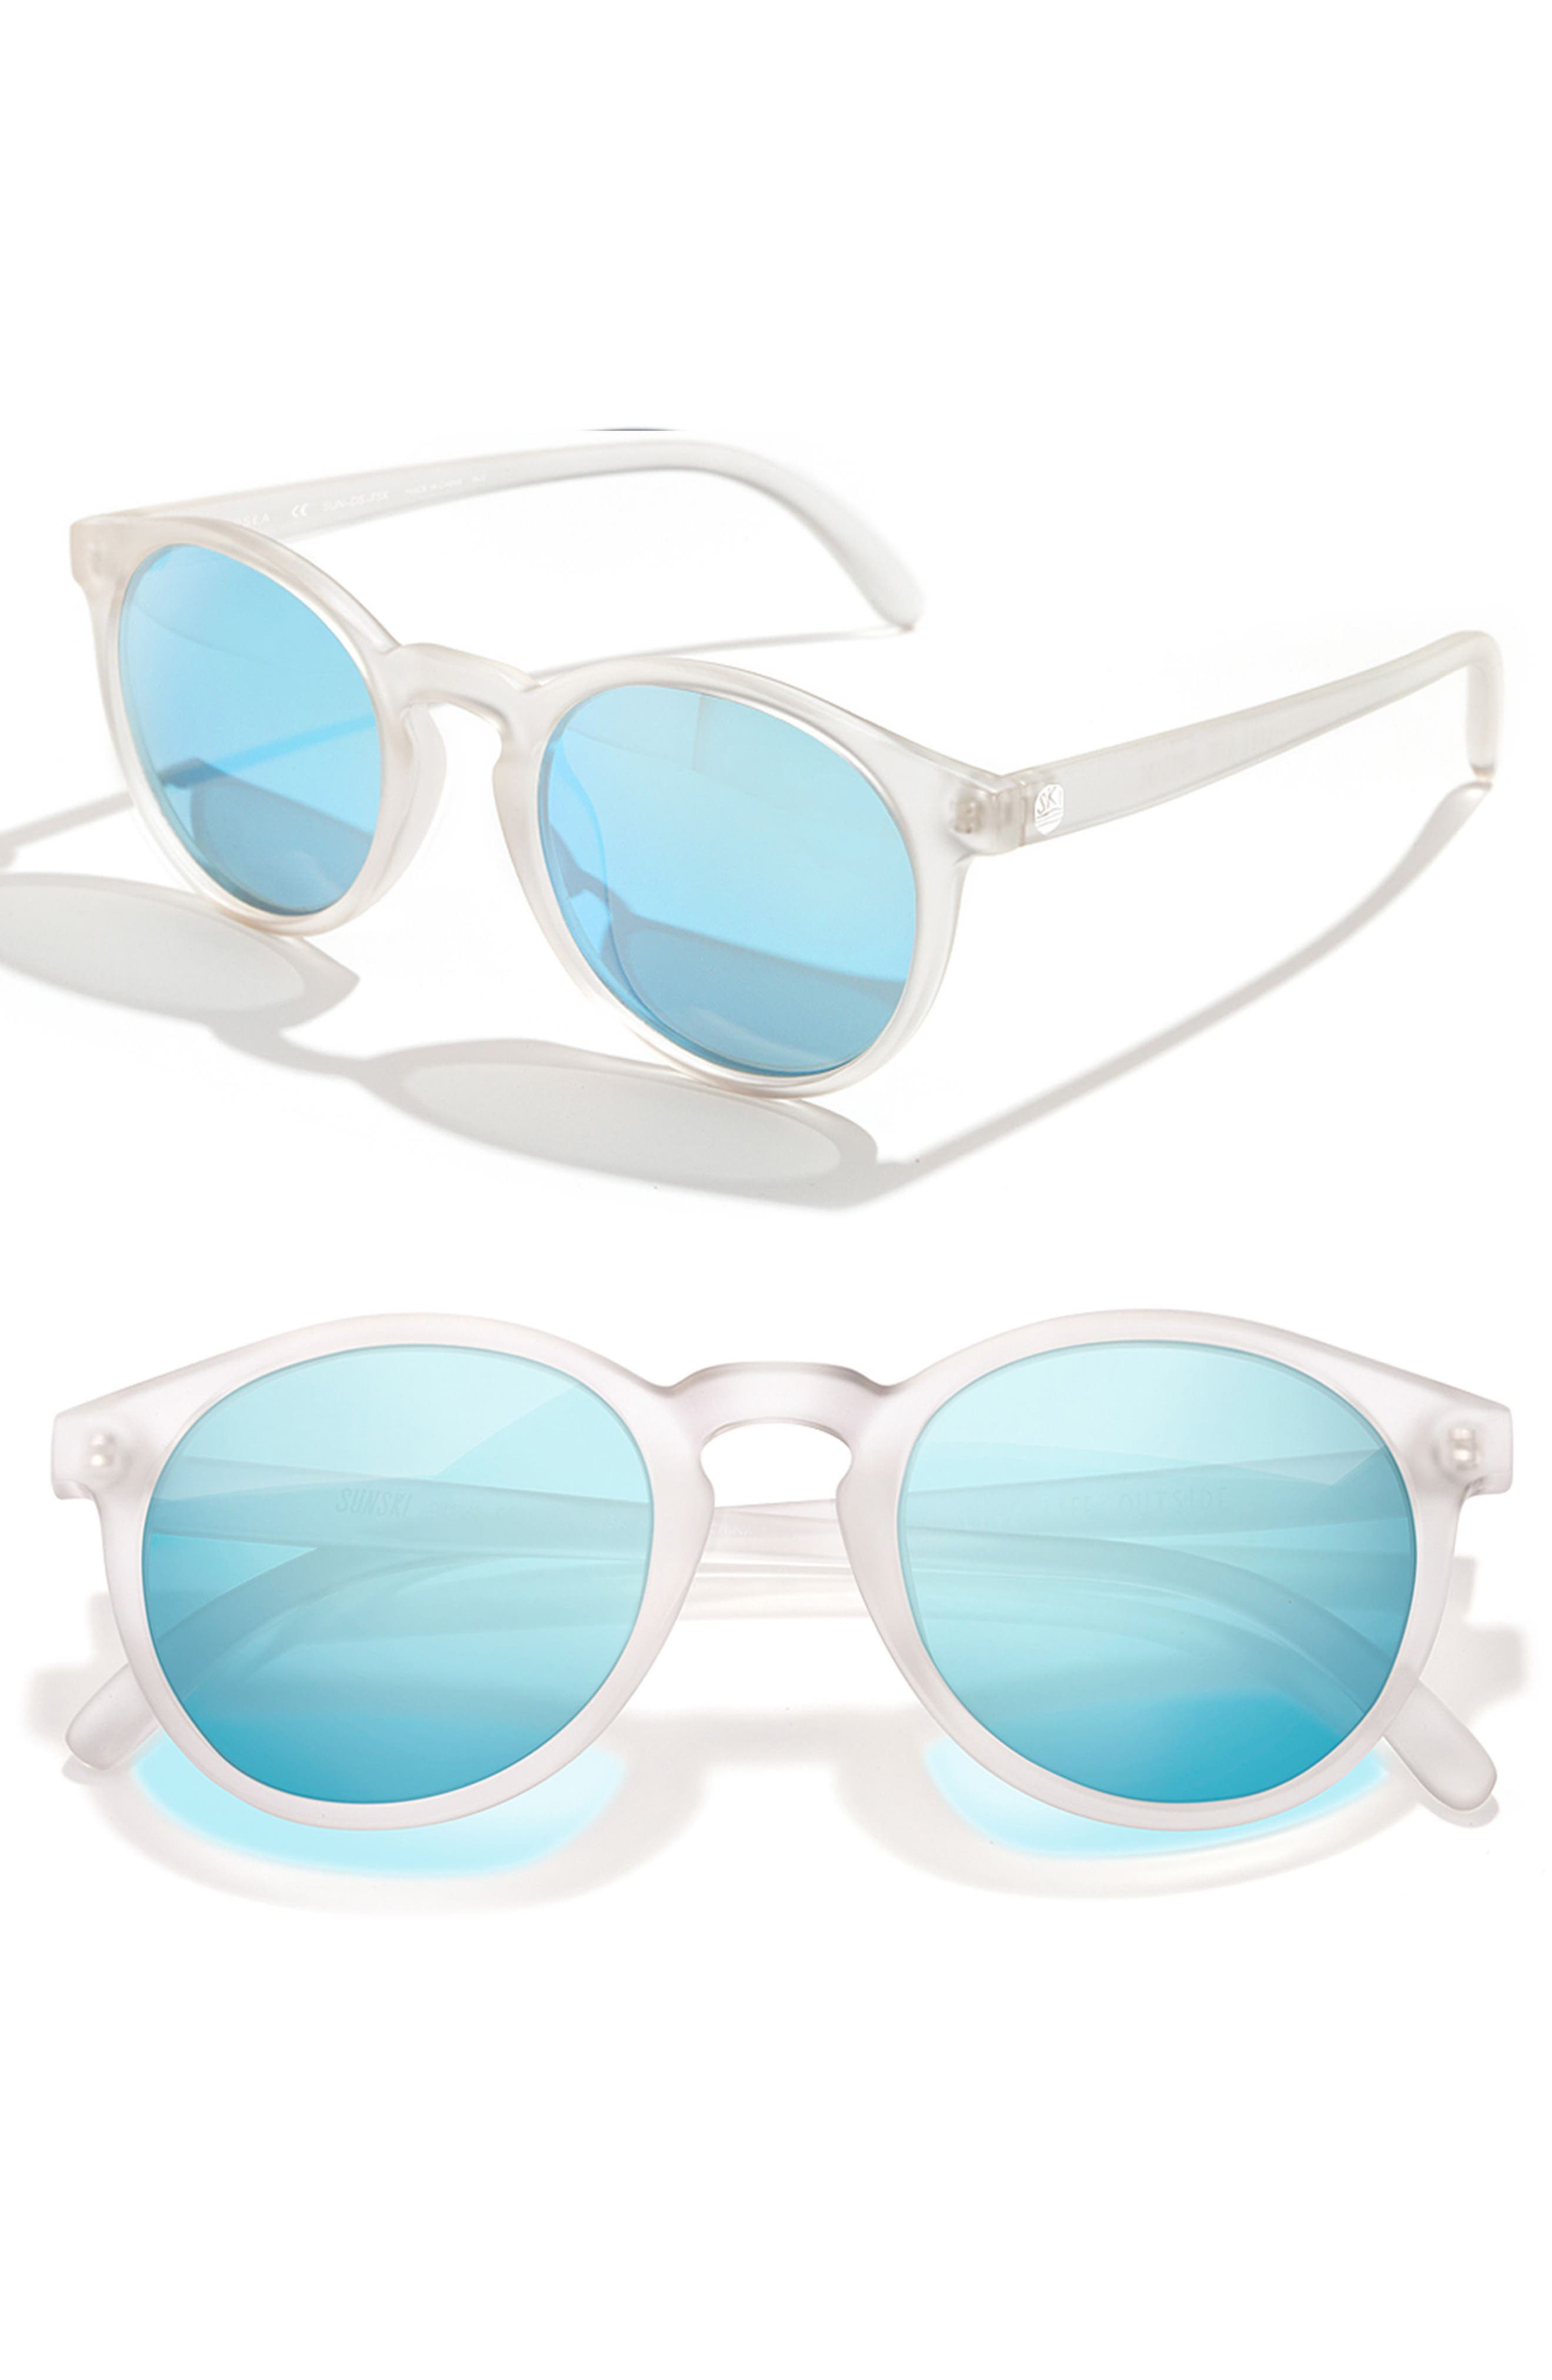 Dipsea 48mm Polarized Sunglasses,                         Main,                         color, FROSTED SKY